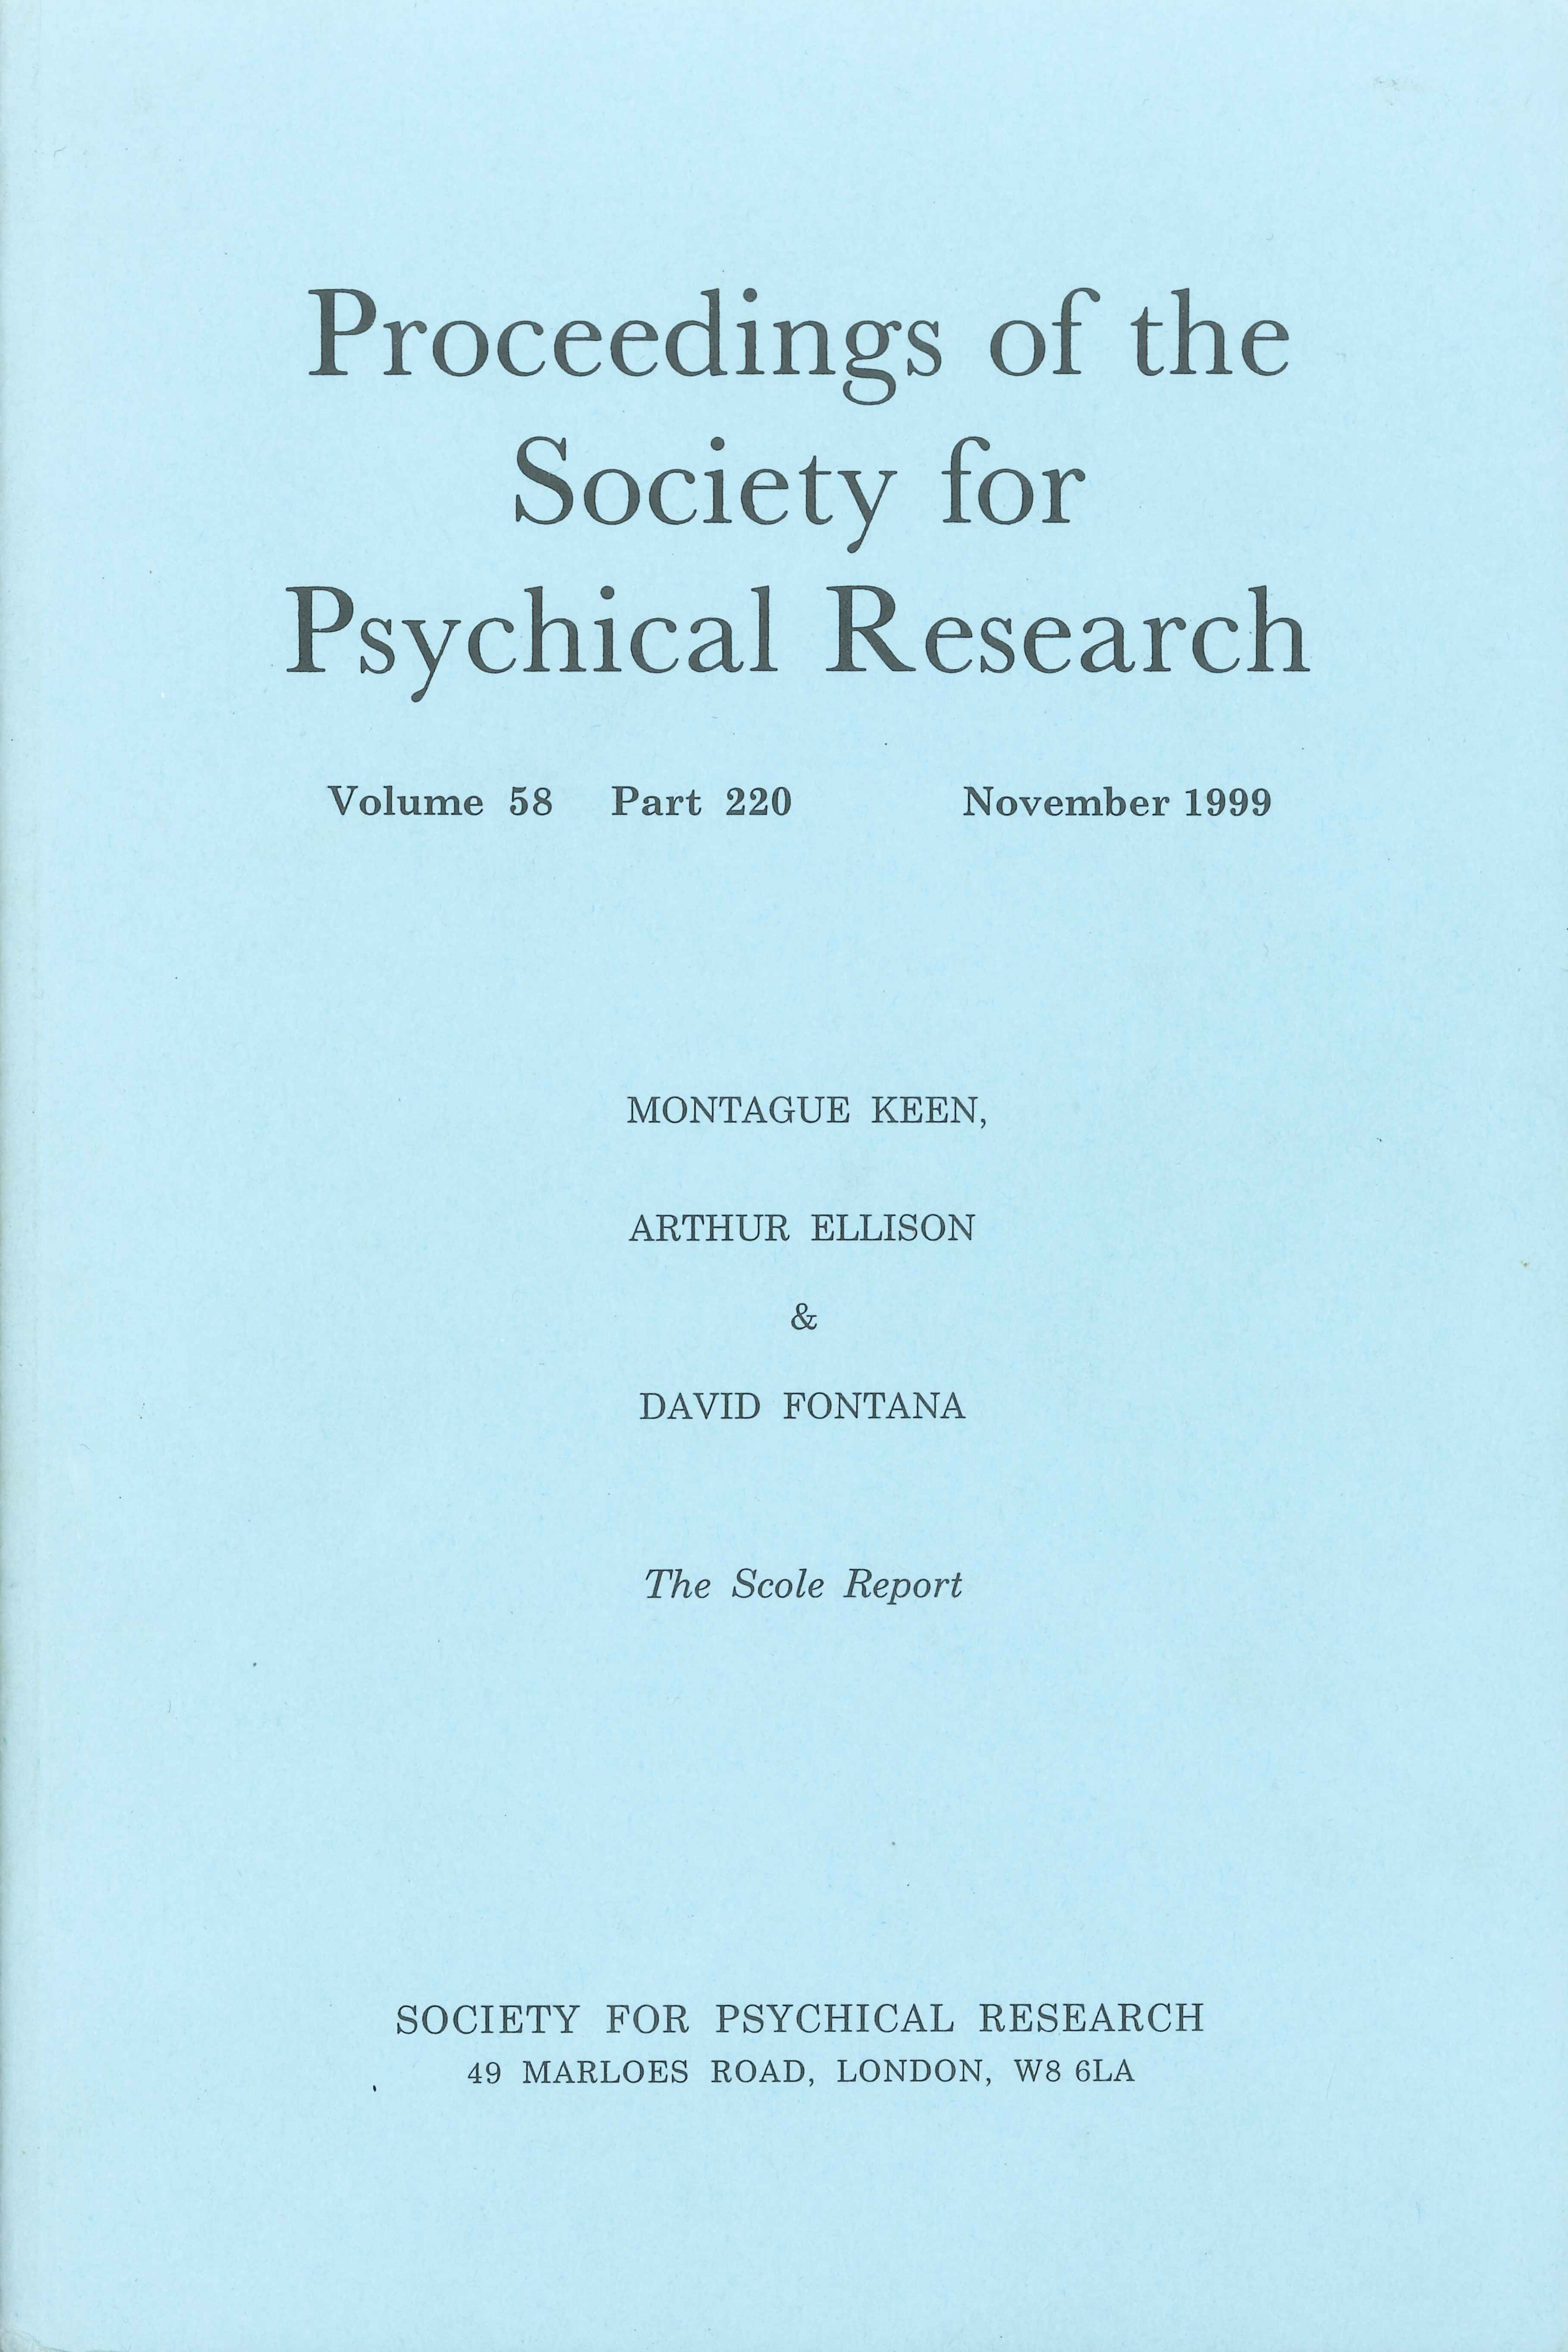 The Scole Report - Proceedings of the Society for Psychical Research, Autoren: Montague Keen, Arthur Ellison, David Fontana, Herausgeber: Society for Psychical Research 1999, ISBN 0900677066